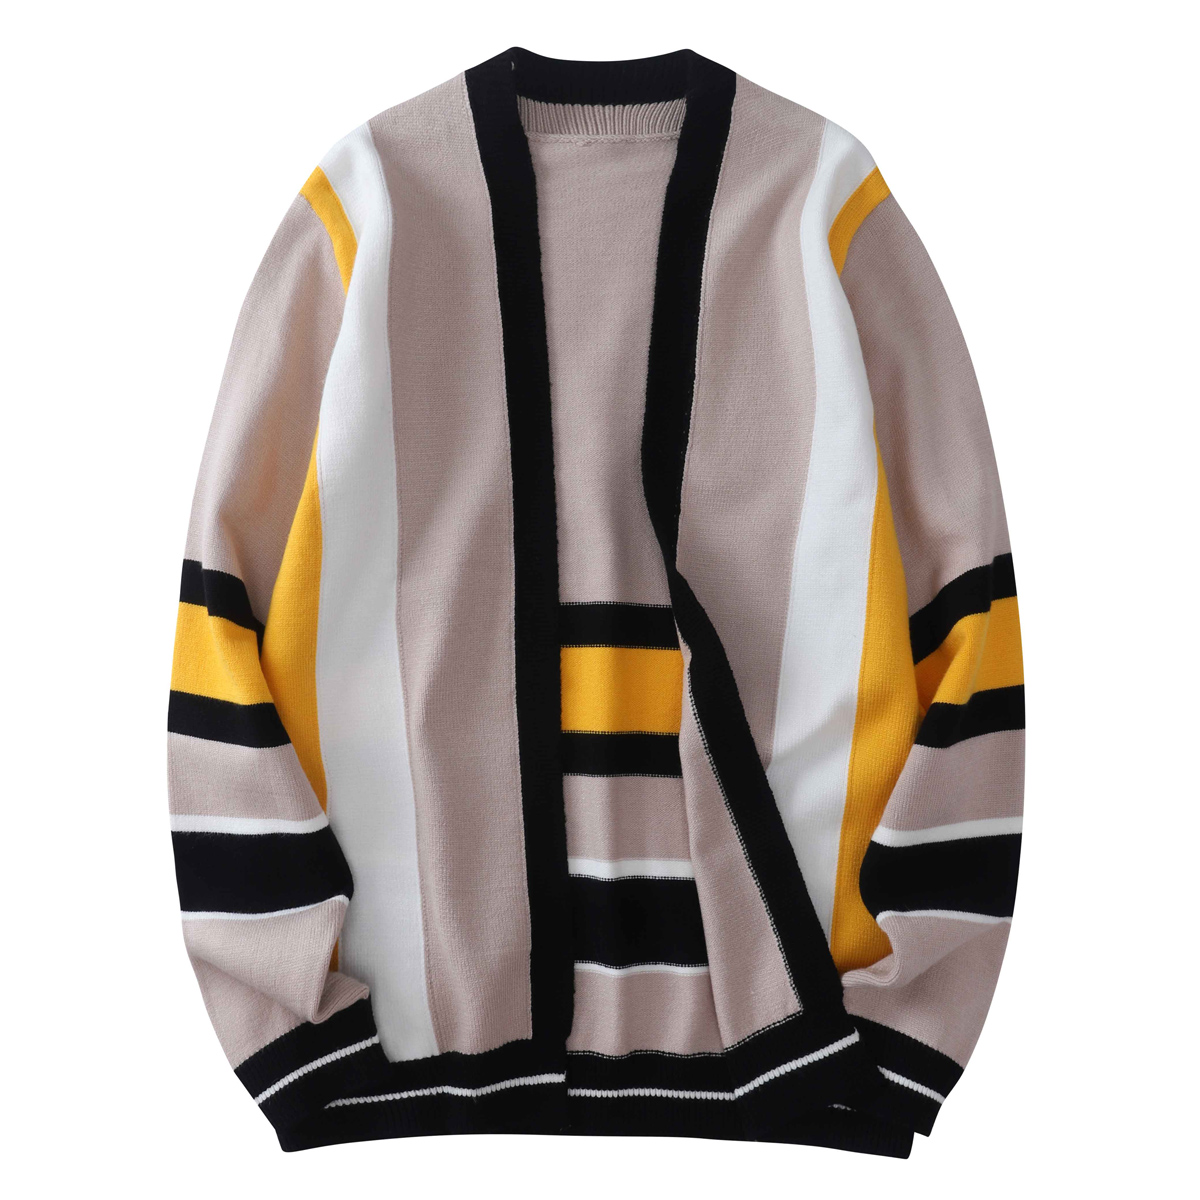 Korean Loose Sweater Men 2020 Spirnt Autumn Brand Striped Cardigan Sweaters Man Casual Knitwear Sweater Coat Men Clothes Fashion